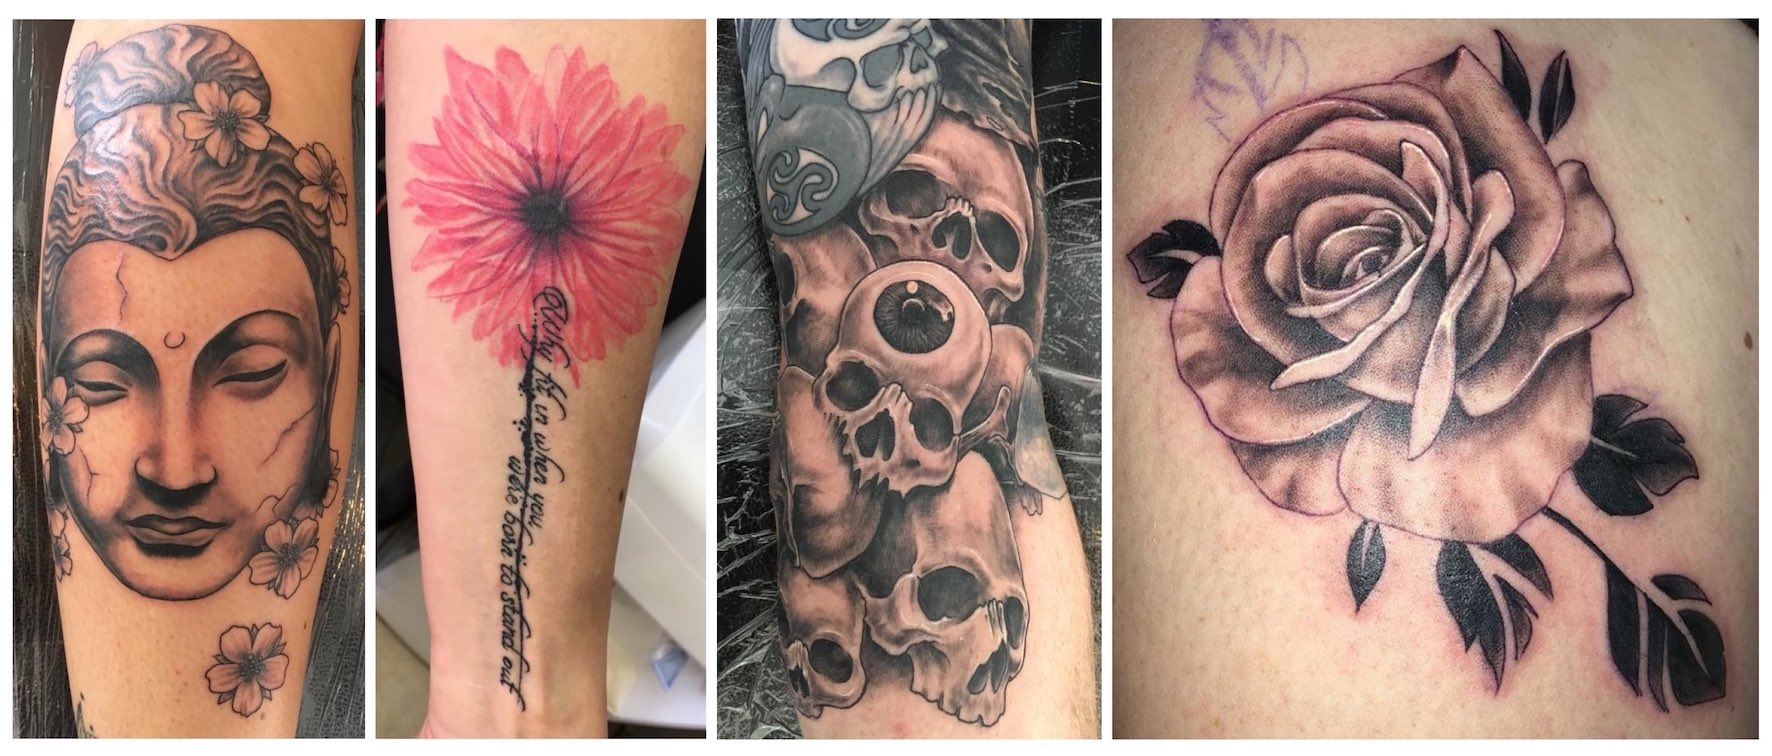 A selection of tattoos down by Christo Kleynhans